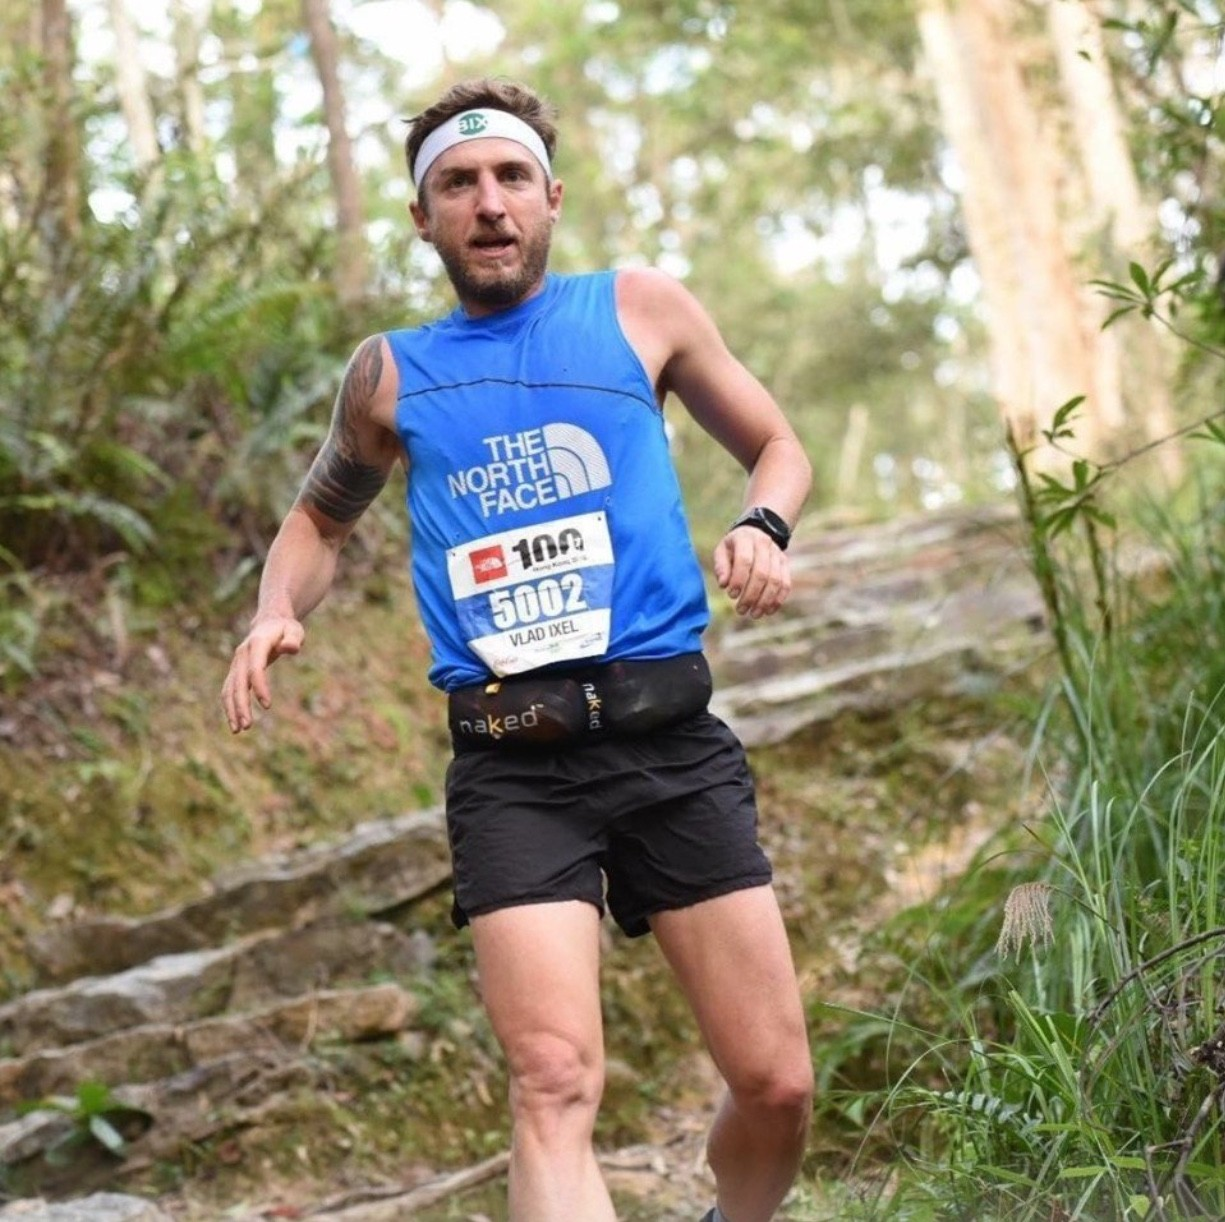 Vlad Ixel traded his alcohol and cigarette addiction for an addiction to trail running